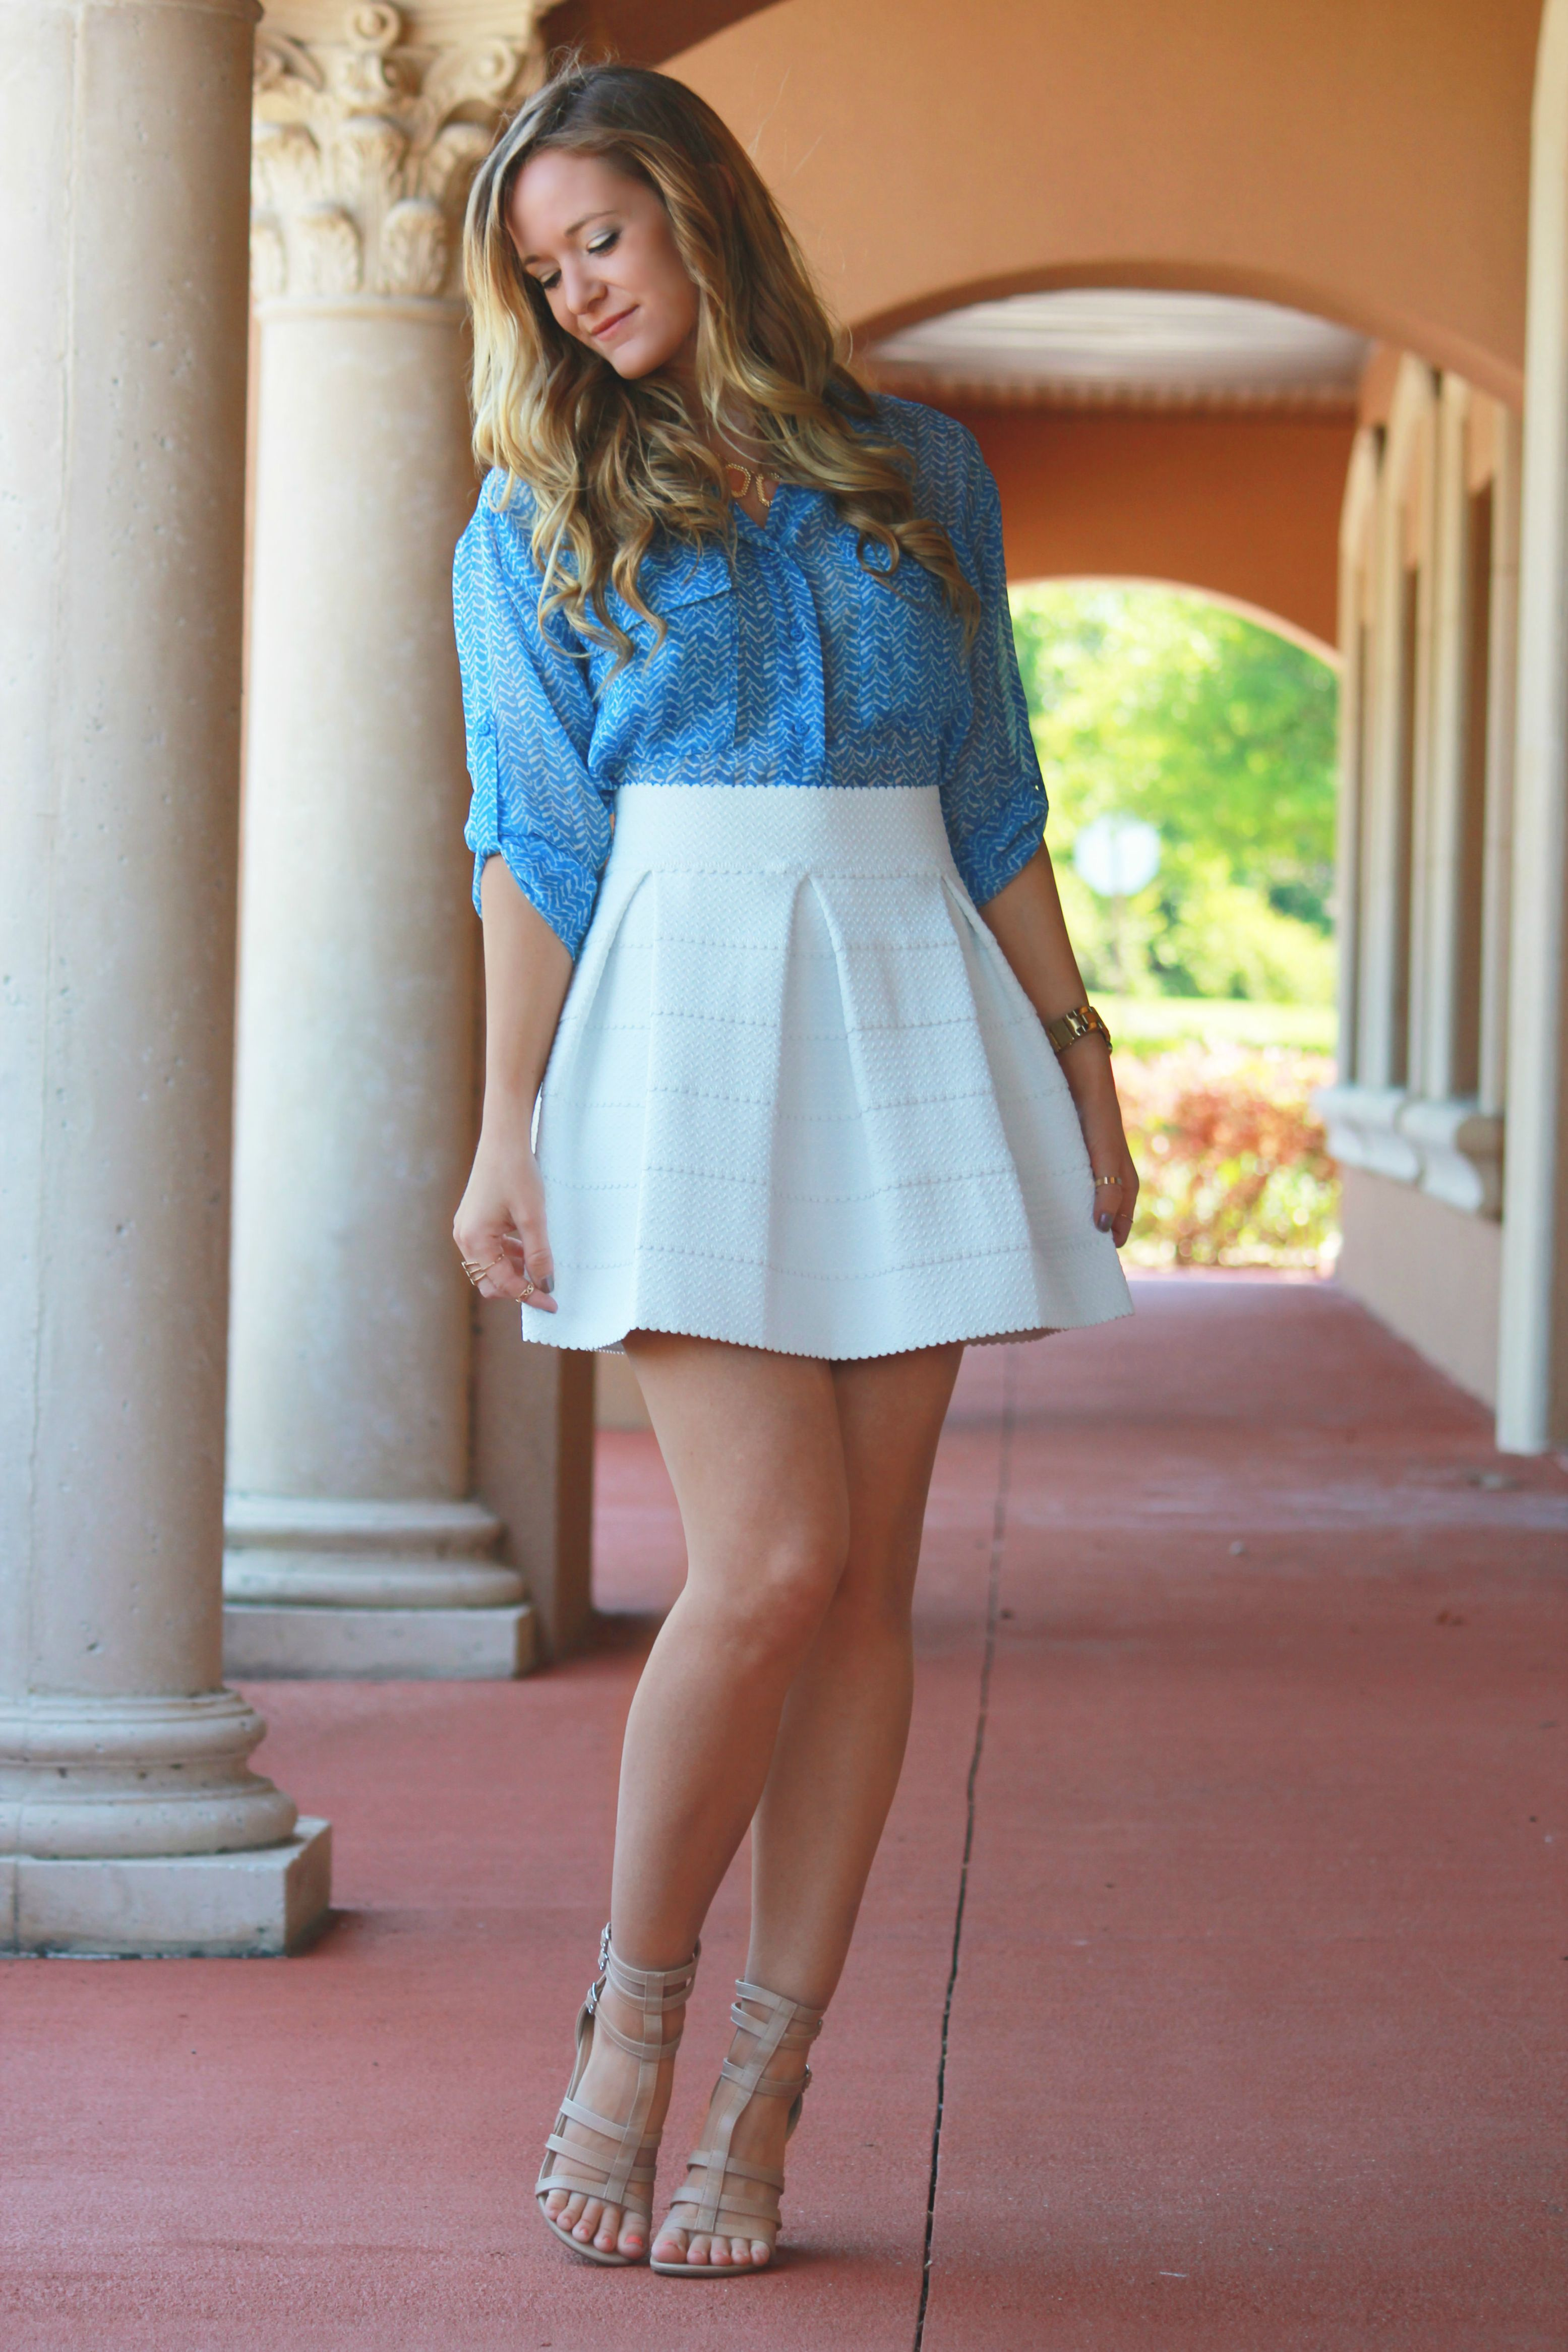 sophie and trey skirt, skater skirt, sophie and trey sandals, sophie and trey outfit, spring outfit, pastel outfit